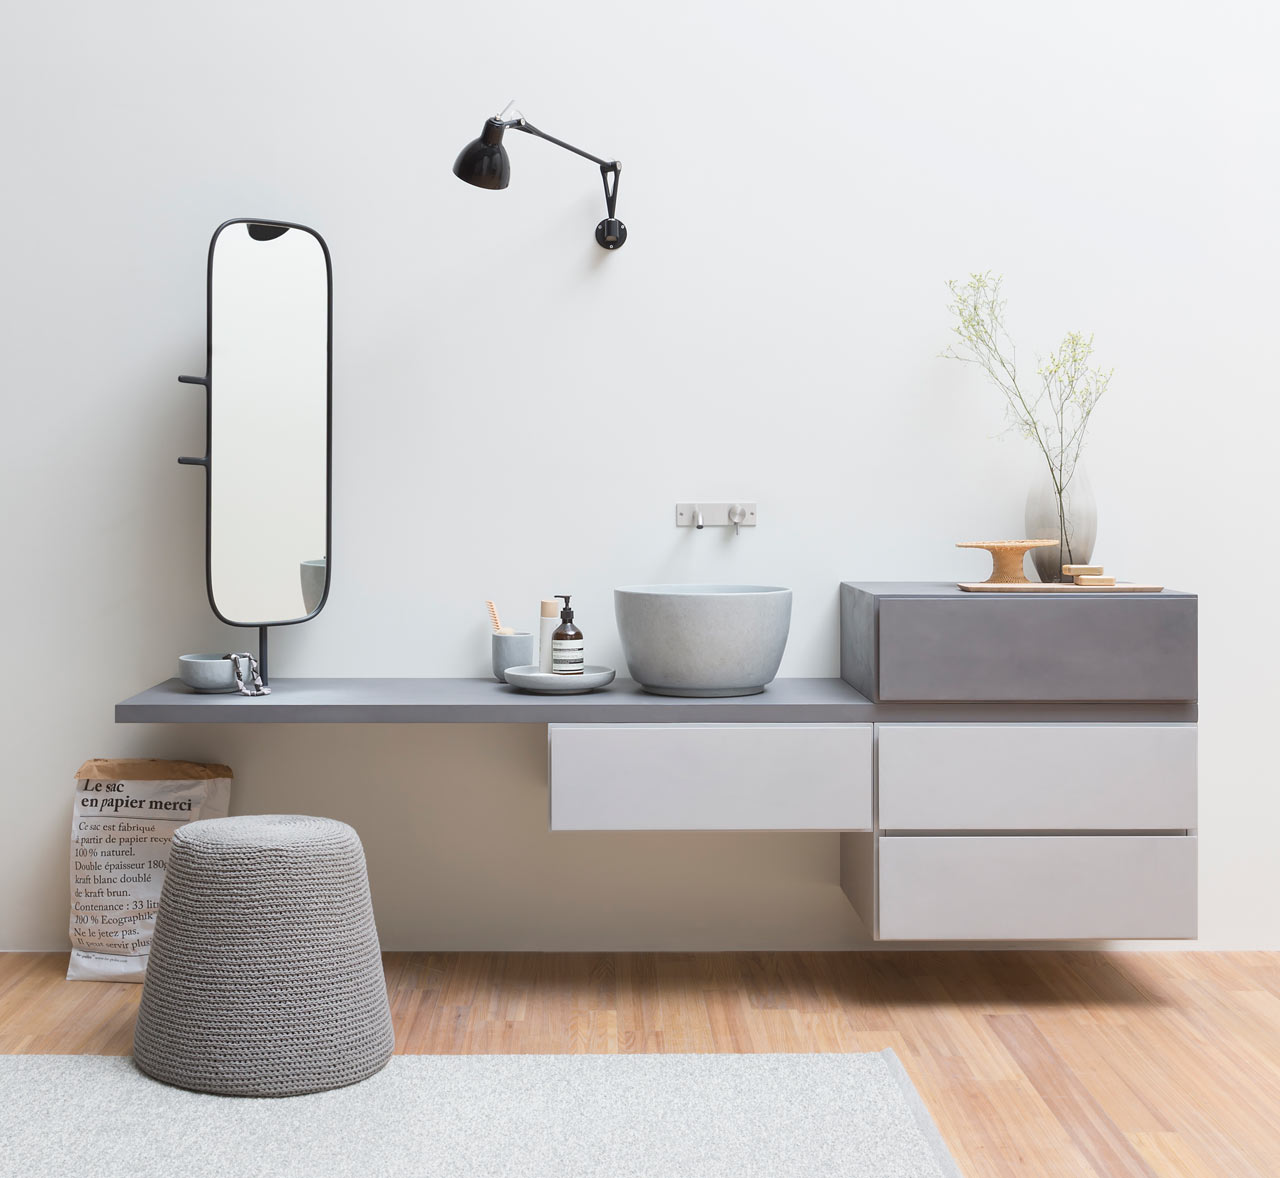 ESPERANTO: Modular Units for a Modern Bathroom